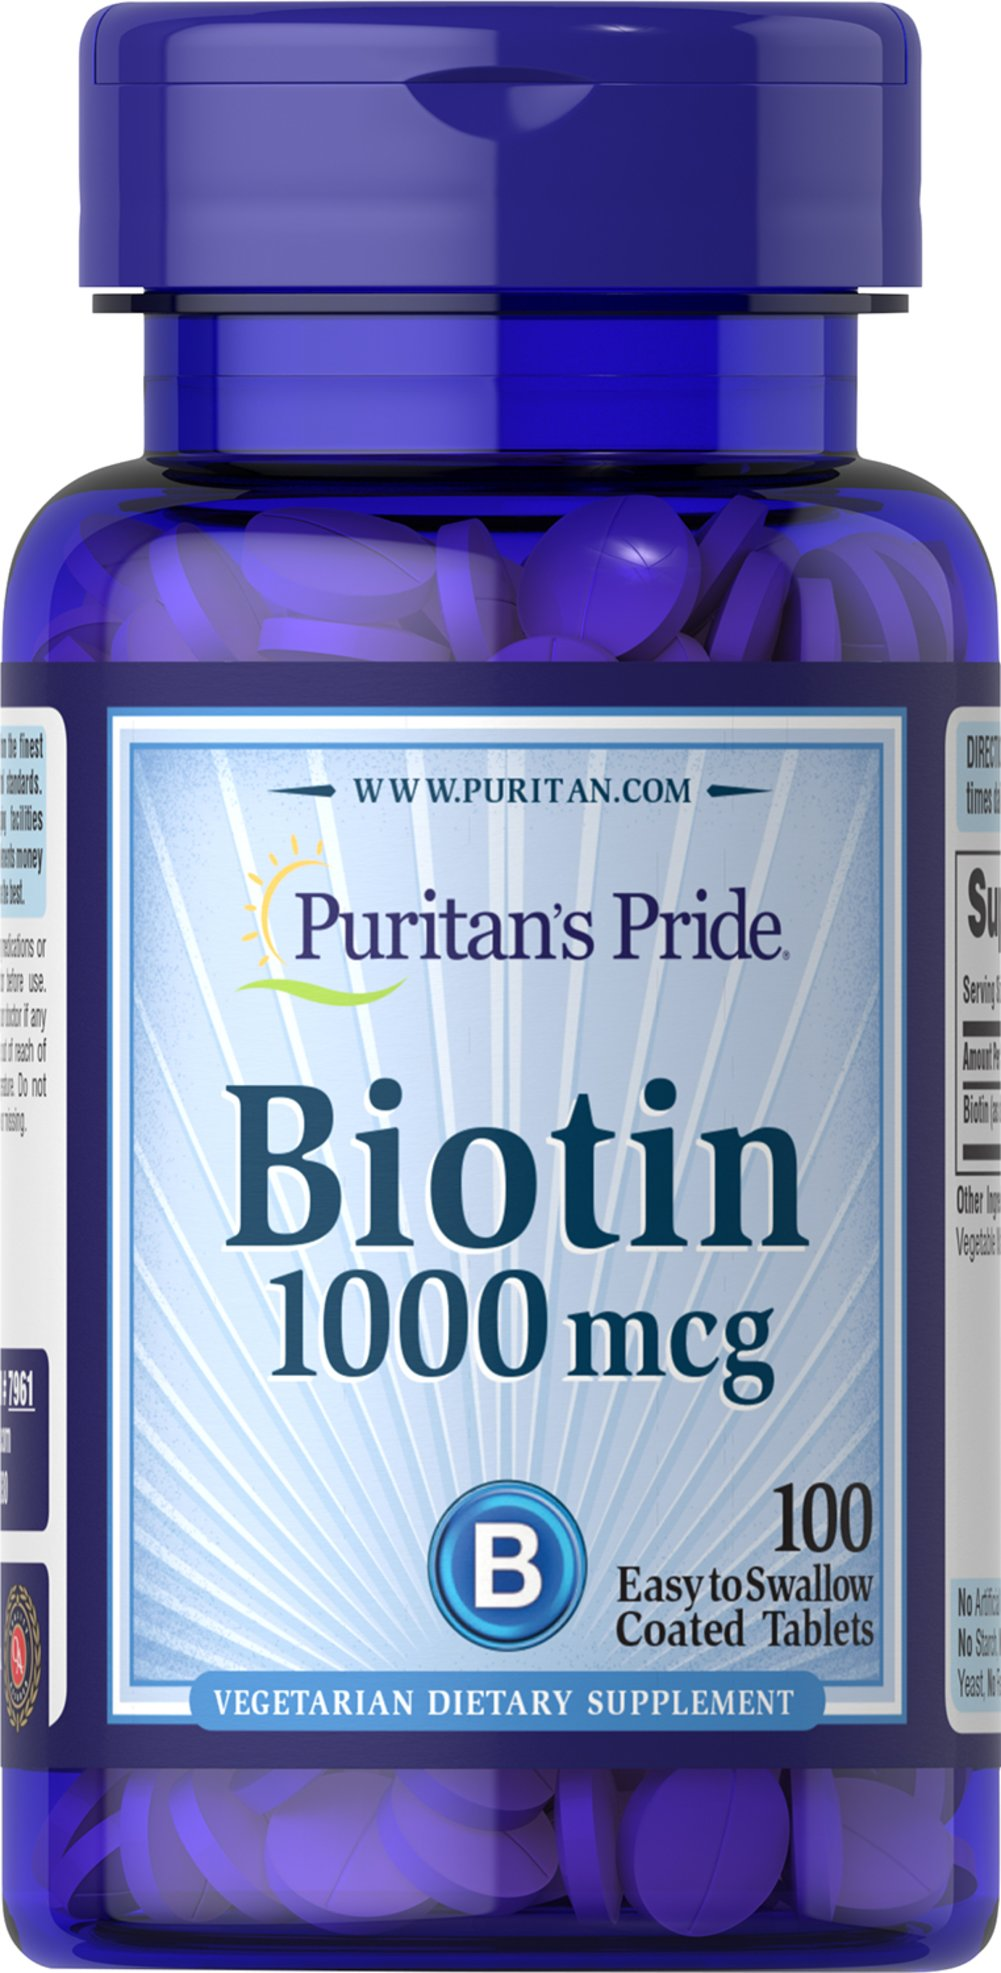 Biotin 1000 mcg <p>Supports Carbohydrate, Protein and Fat Metabolism**</p><p>Found in foods such as oatmeal and soy, Biotin, a water soluble B vitamin, assists in energy metabolism in cells.** Biotin is essential for the intermediate metabolism of carbohydrates, proteins and fats.** In addition, Biotin helps to support healthy skin and hair.**</p> 100 Tablets 1000 mcg $6.99